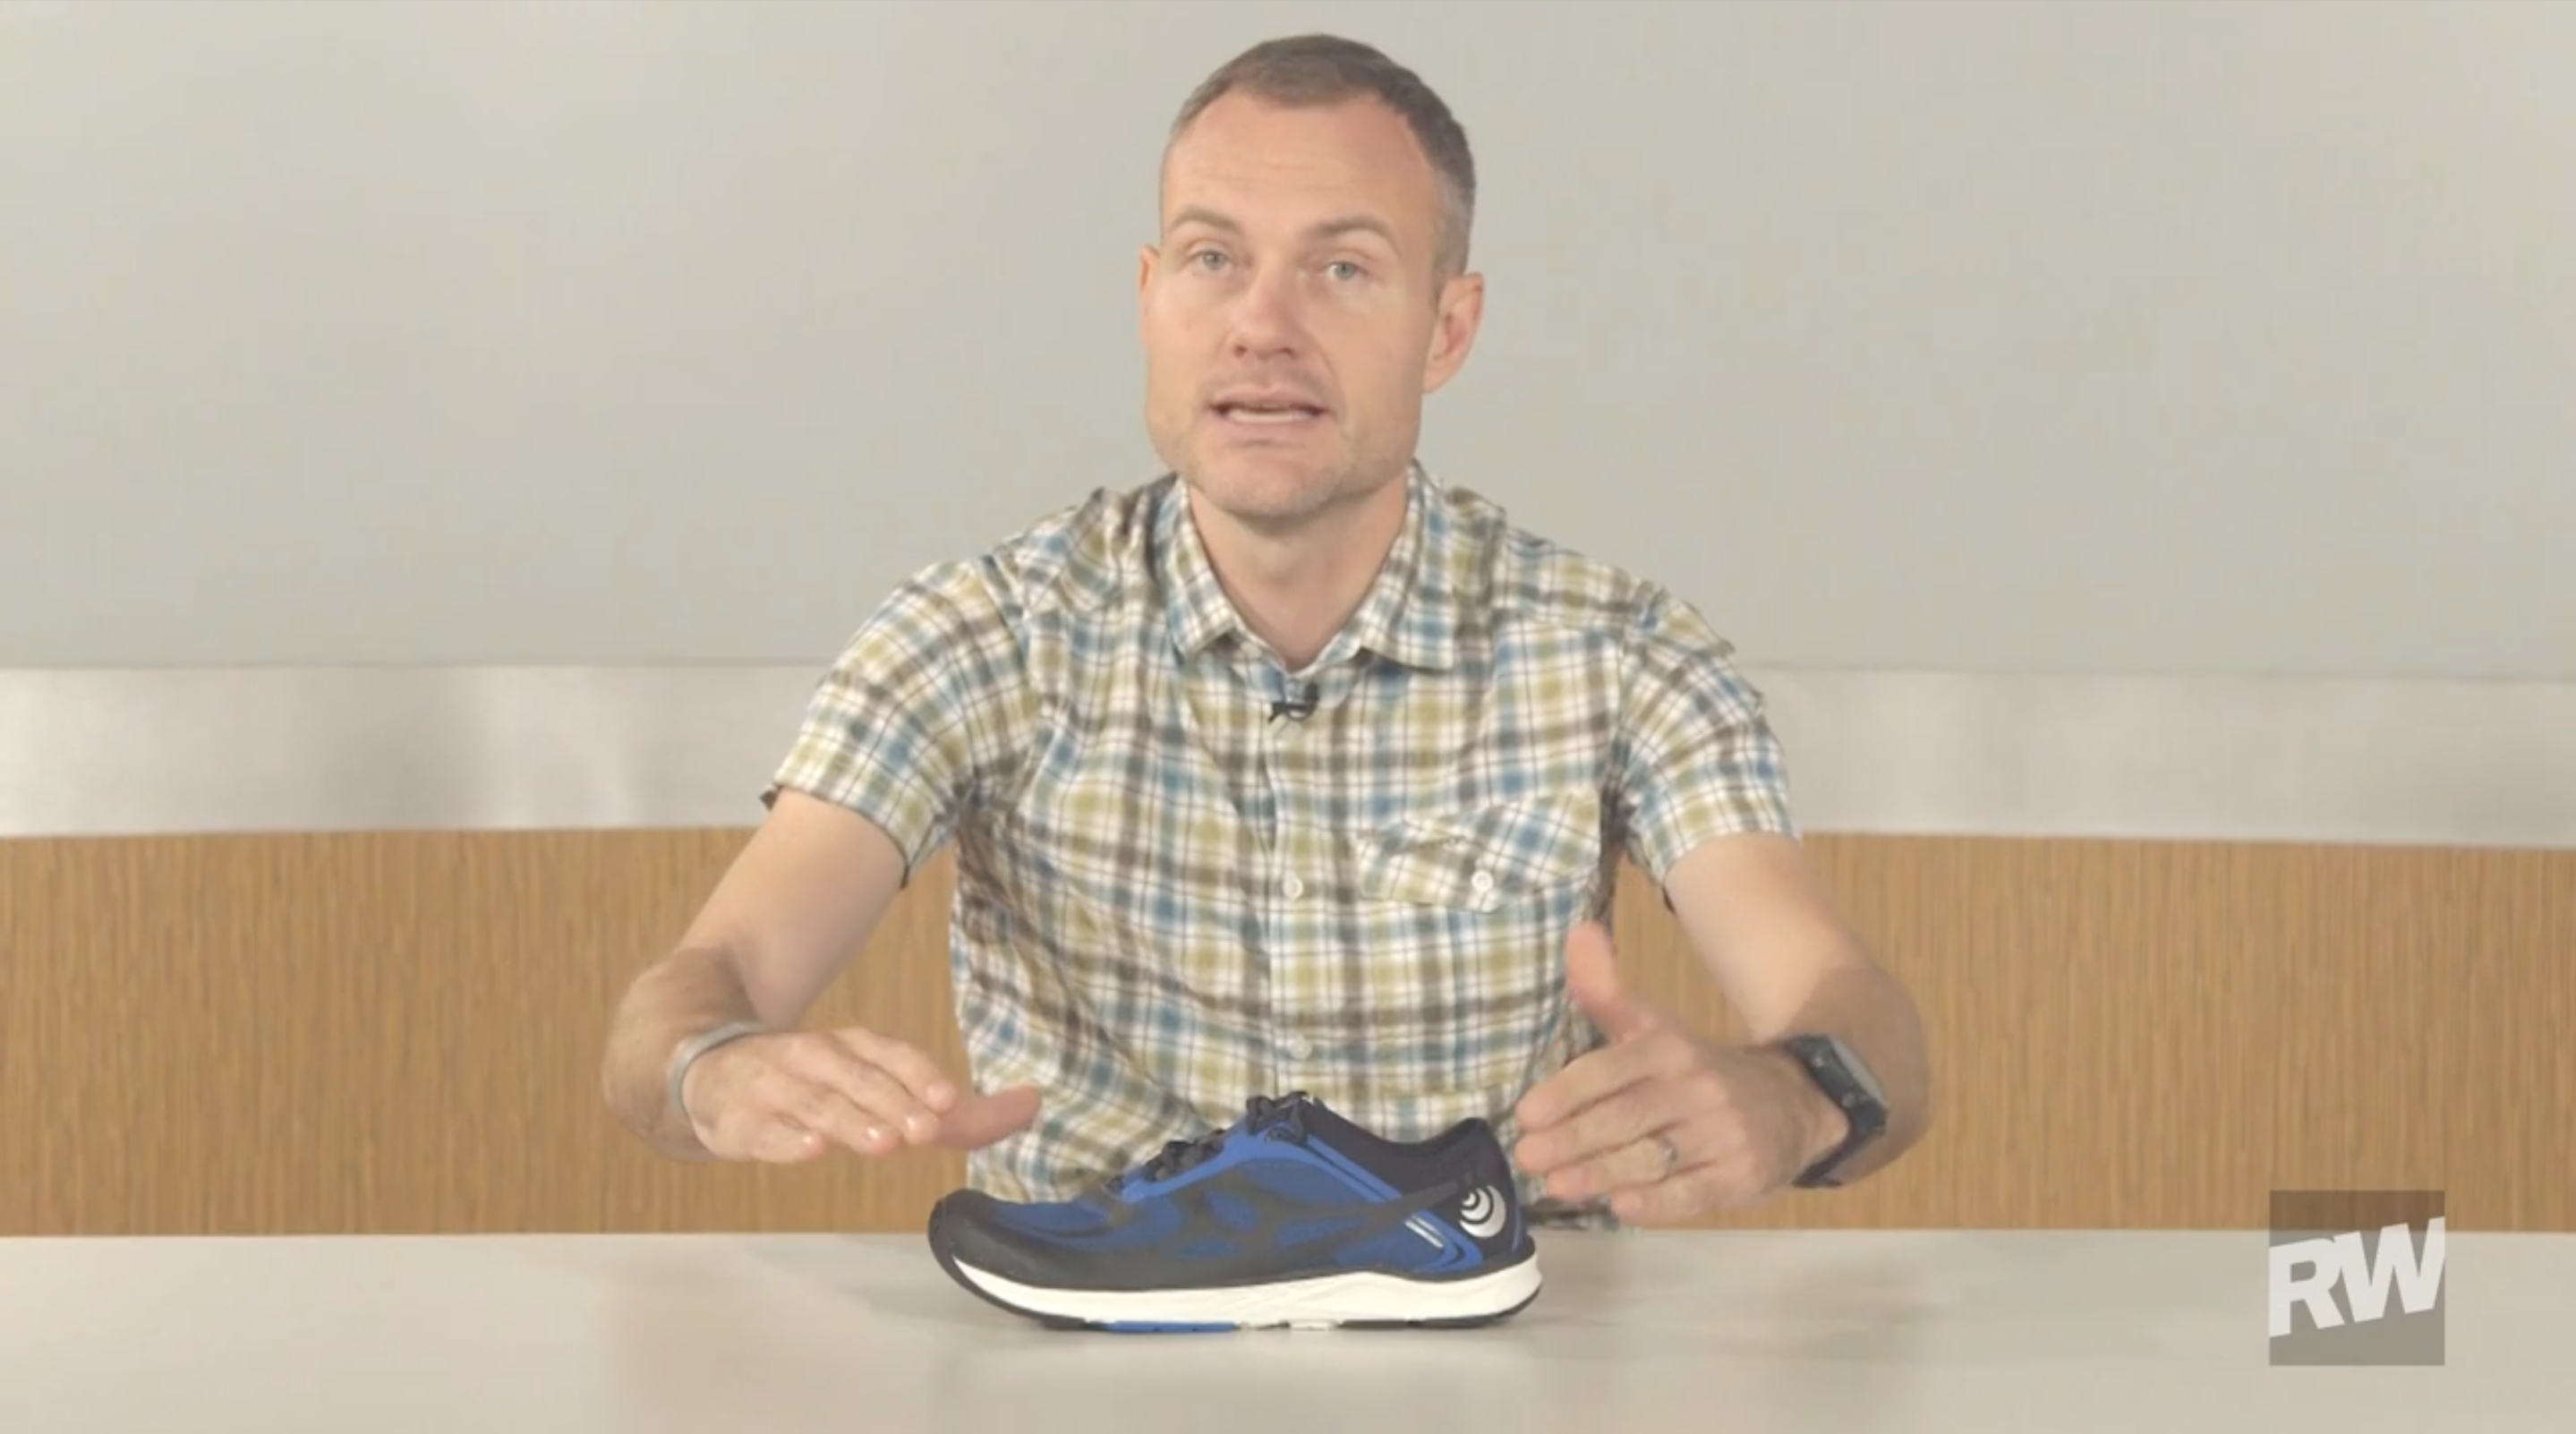 Runner's World - Video Review - ST-2